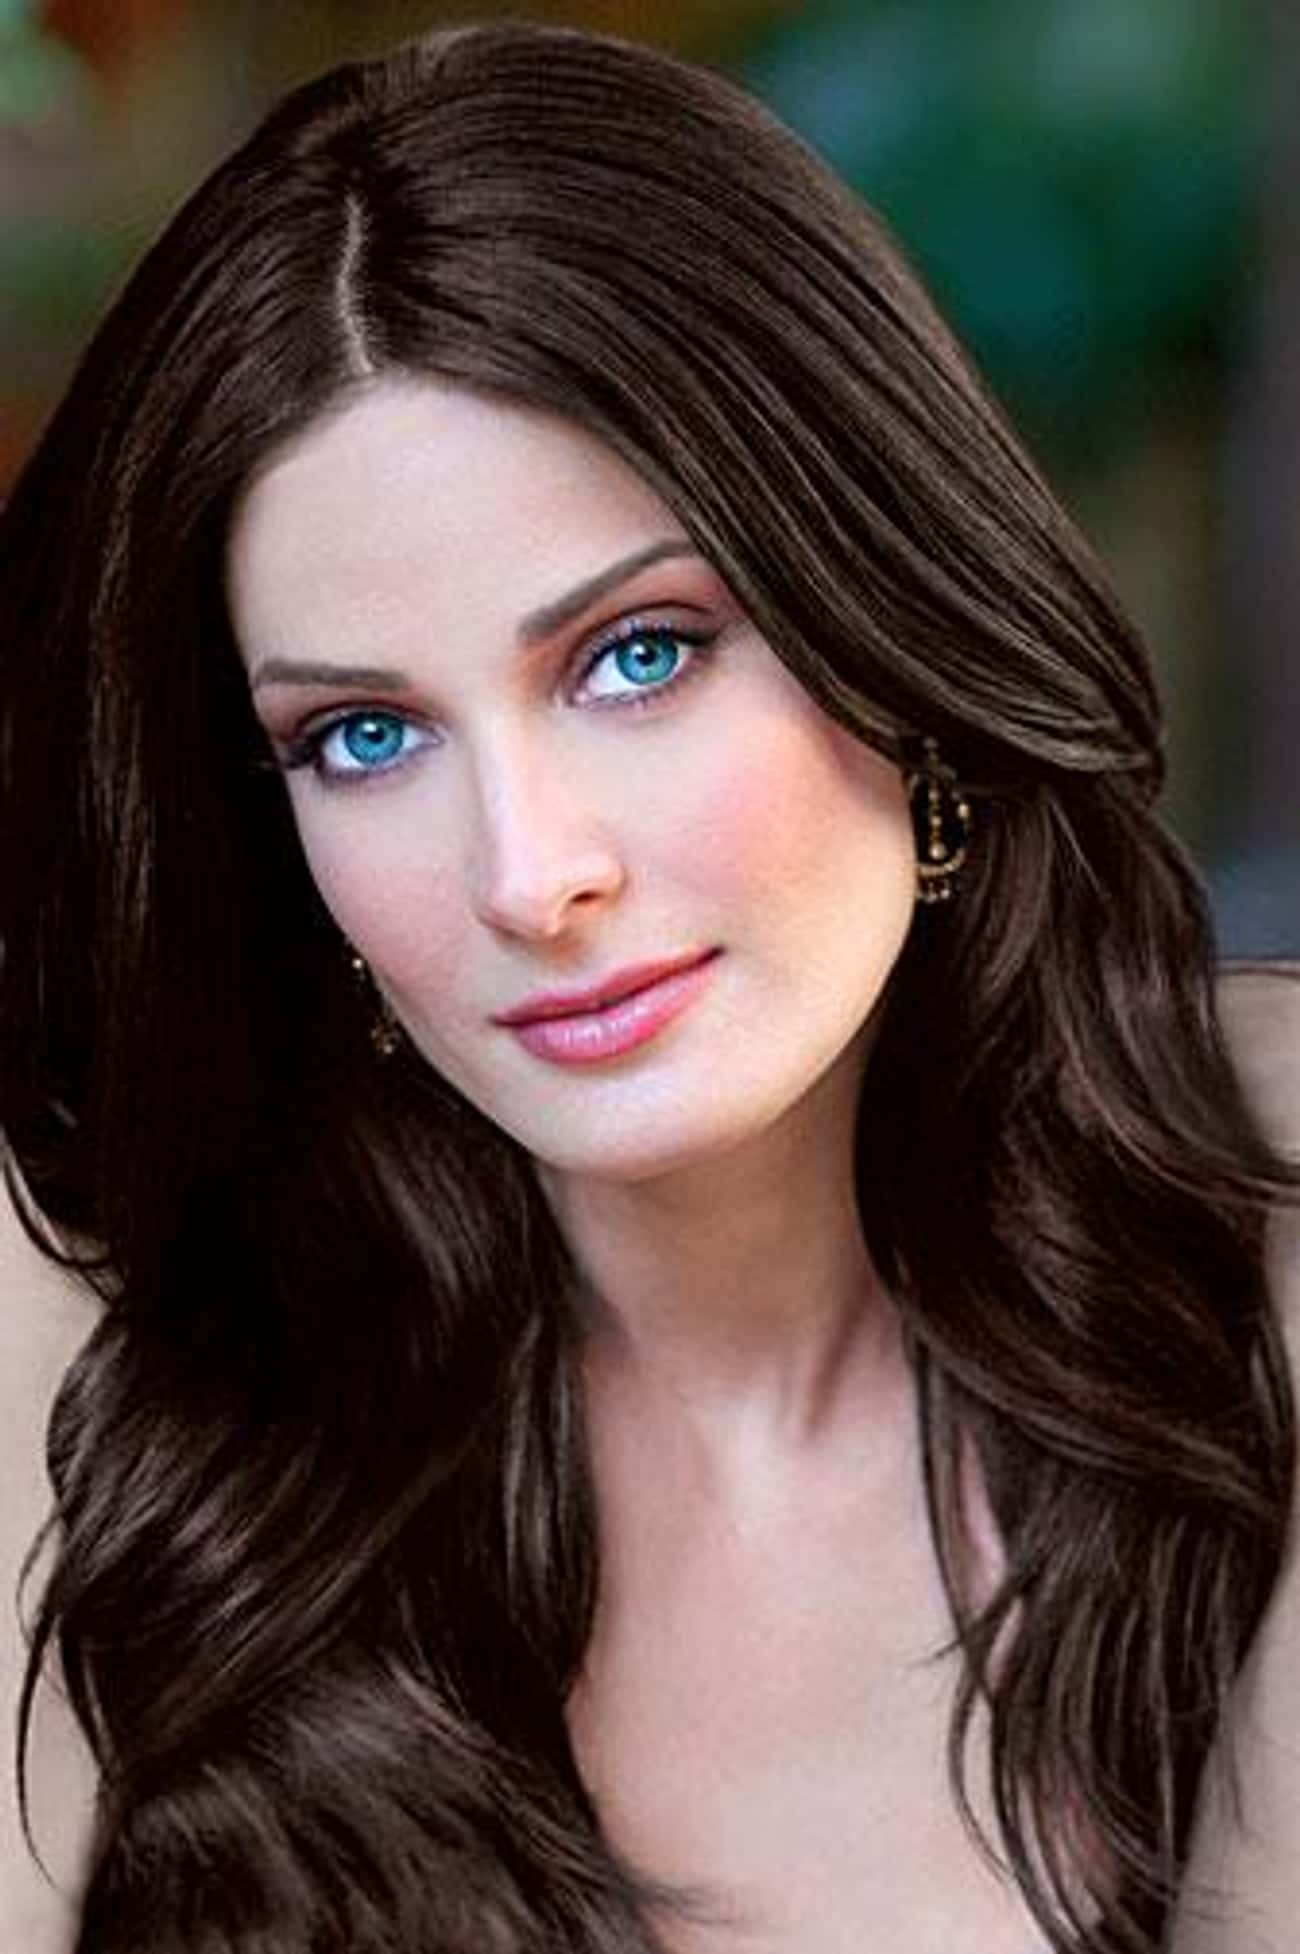 Dayanara Torres - 1993 is listed (or ranked) 1 on the list The Most Beautiful Winners of Miss Universe, Ranked